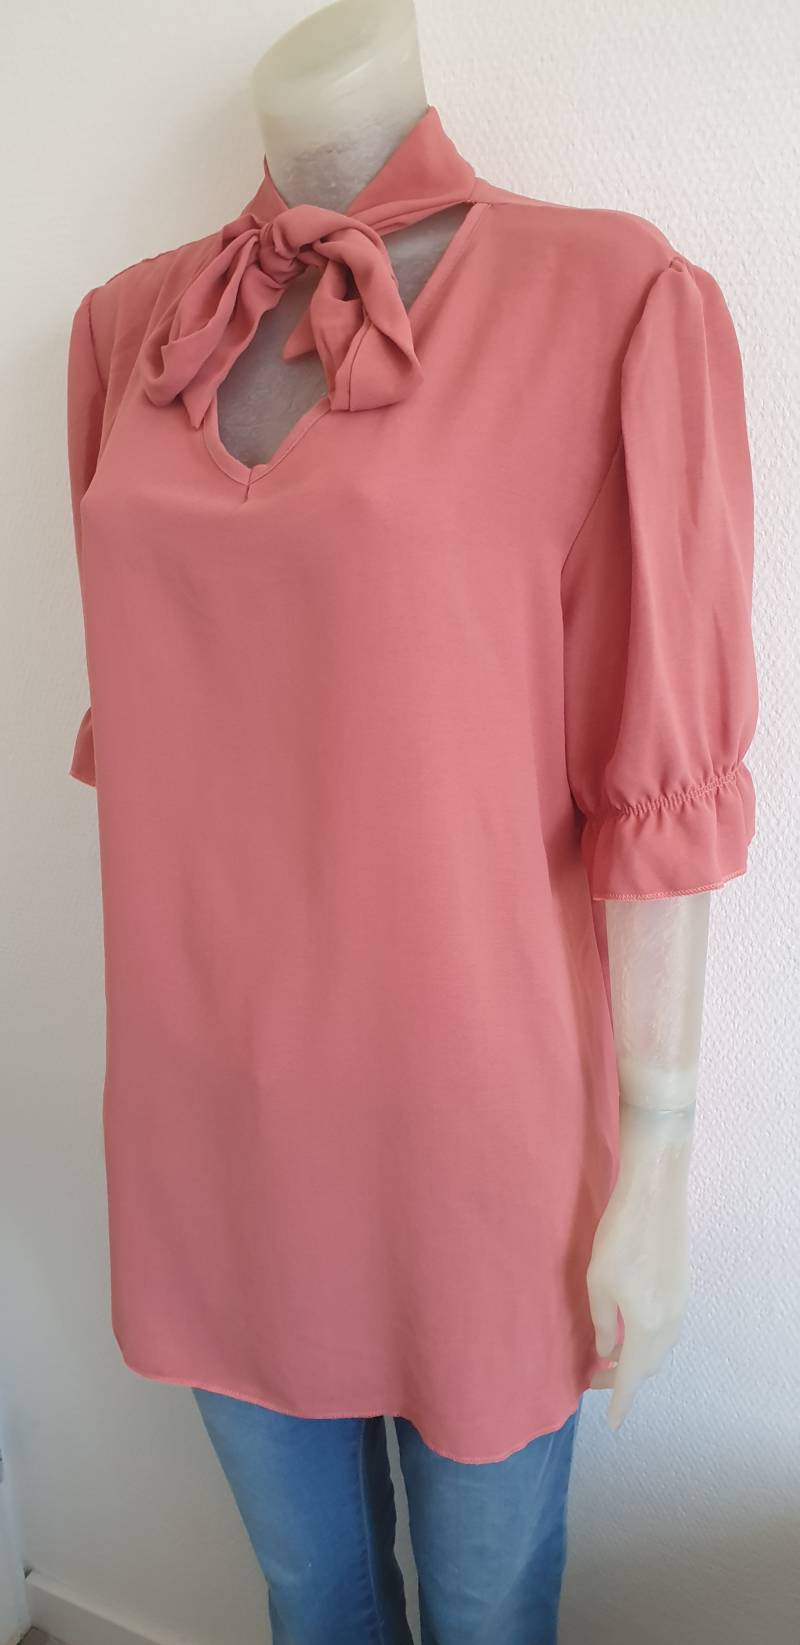 Oud rose top met strik